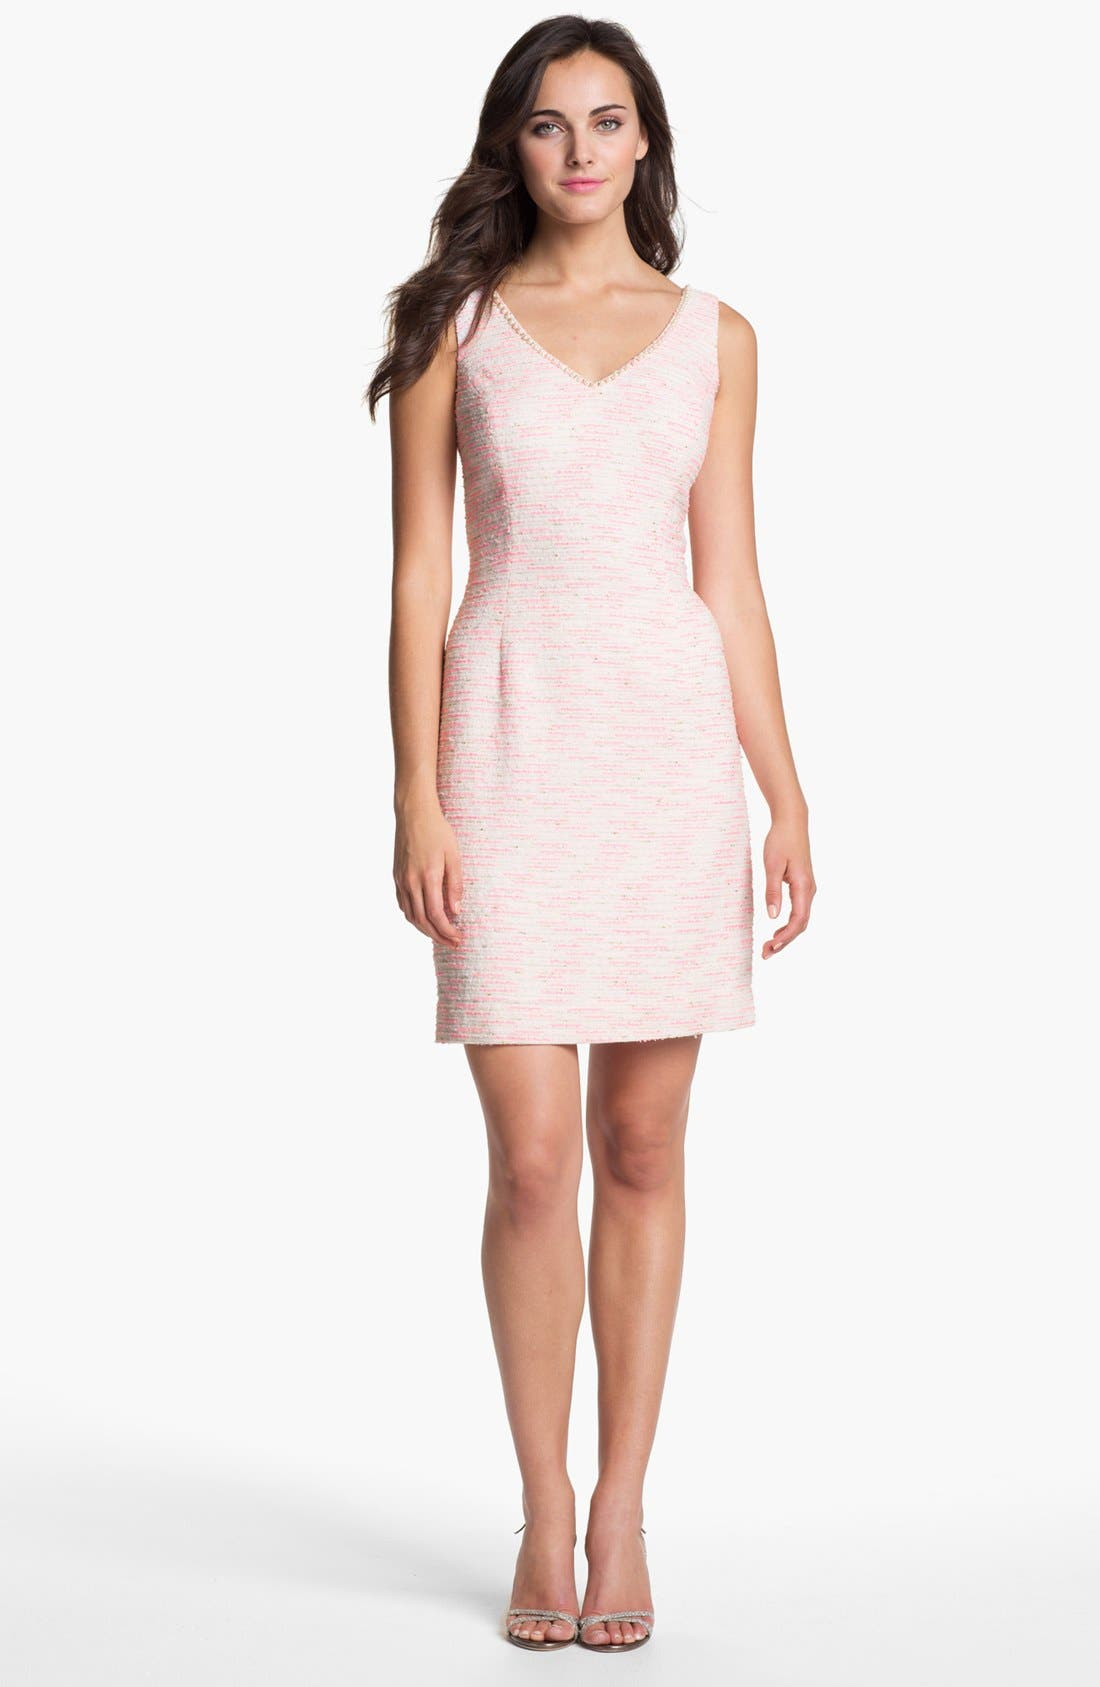 Alternate Image 1 Selected - Lilly Pulitzer® 'Laidley' Embellished Sheath Dress